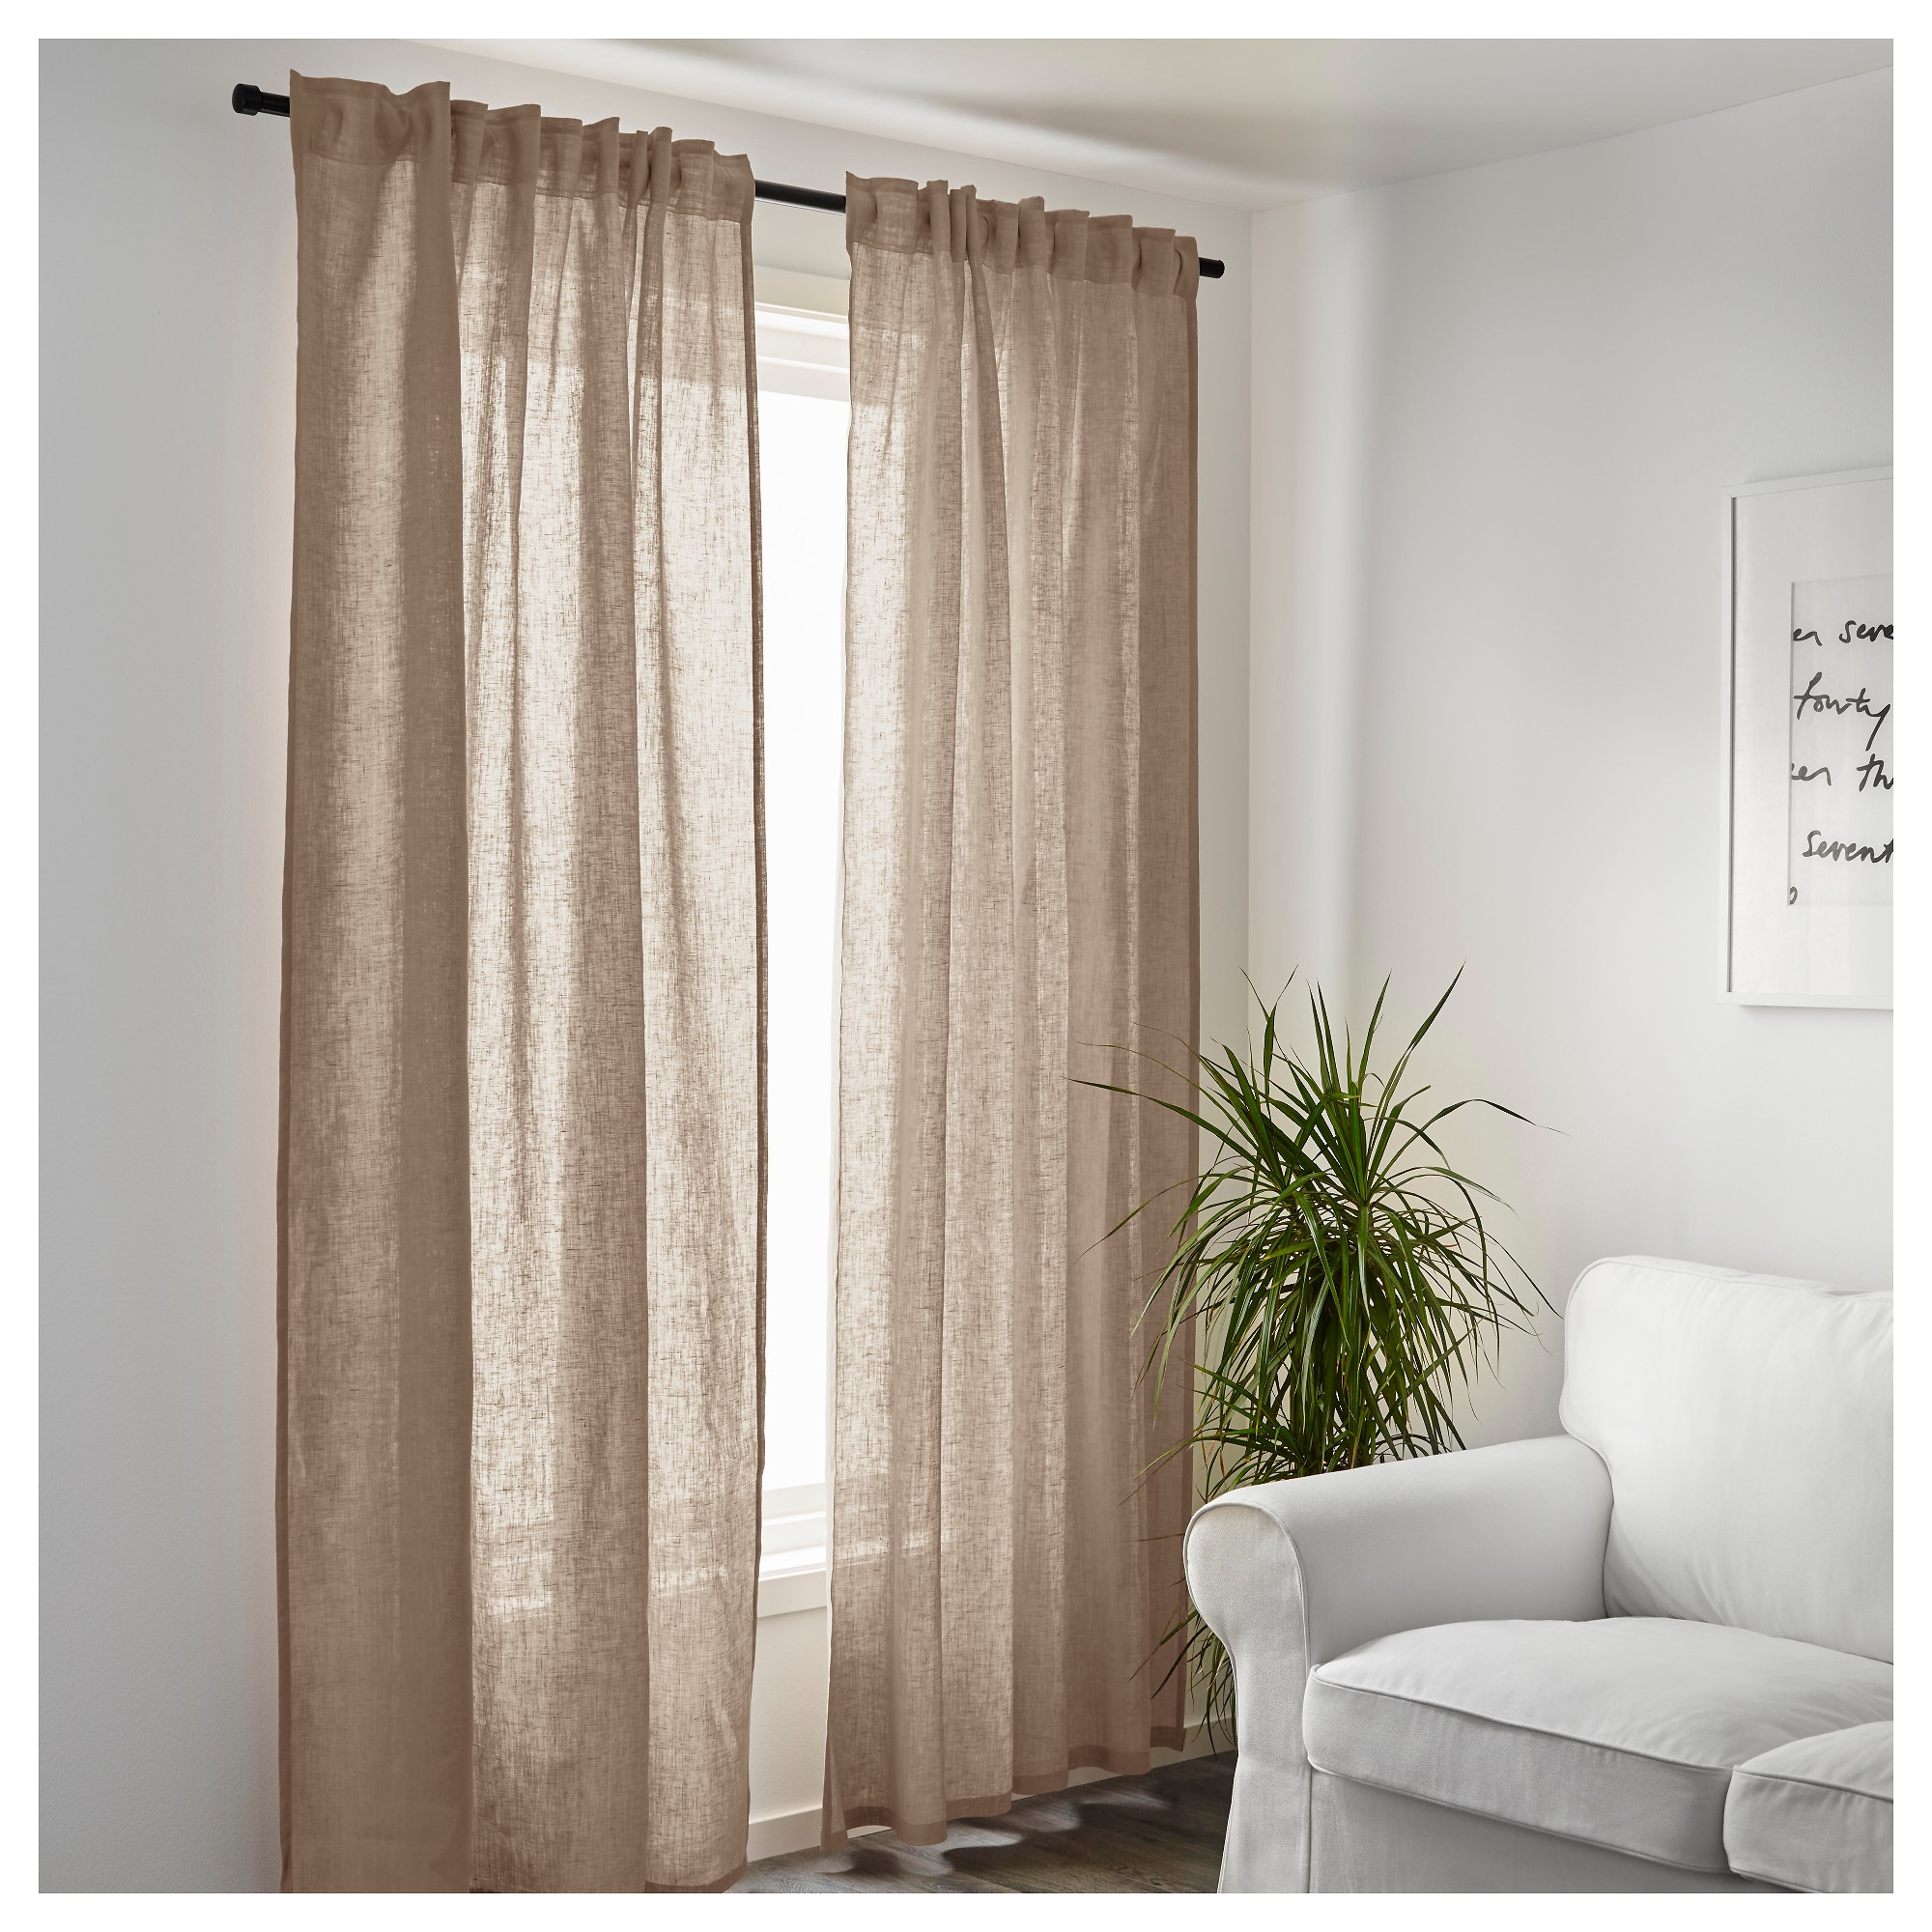 Aina Curtains 1 Pair Ikea In Heavy Linen Drapes (Image 5 of 15)